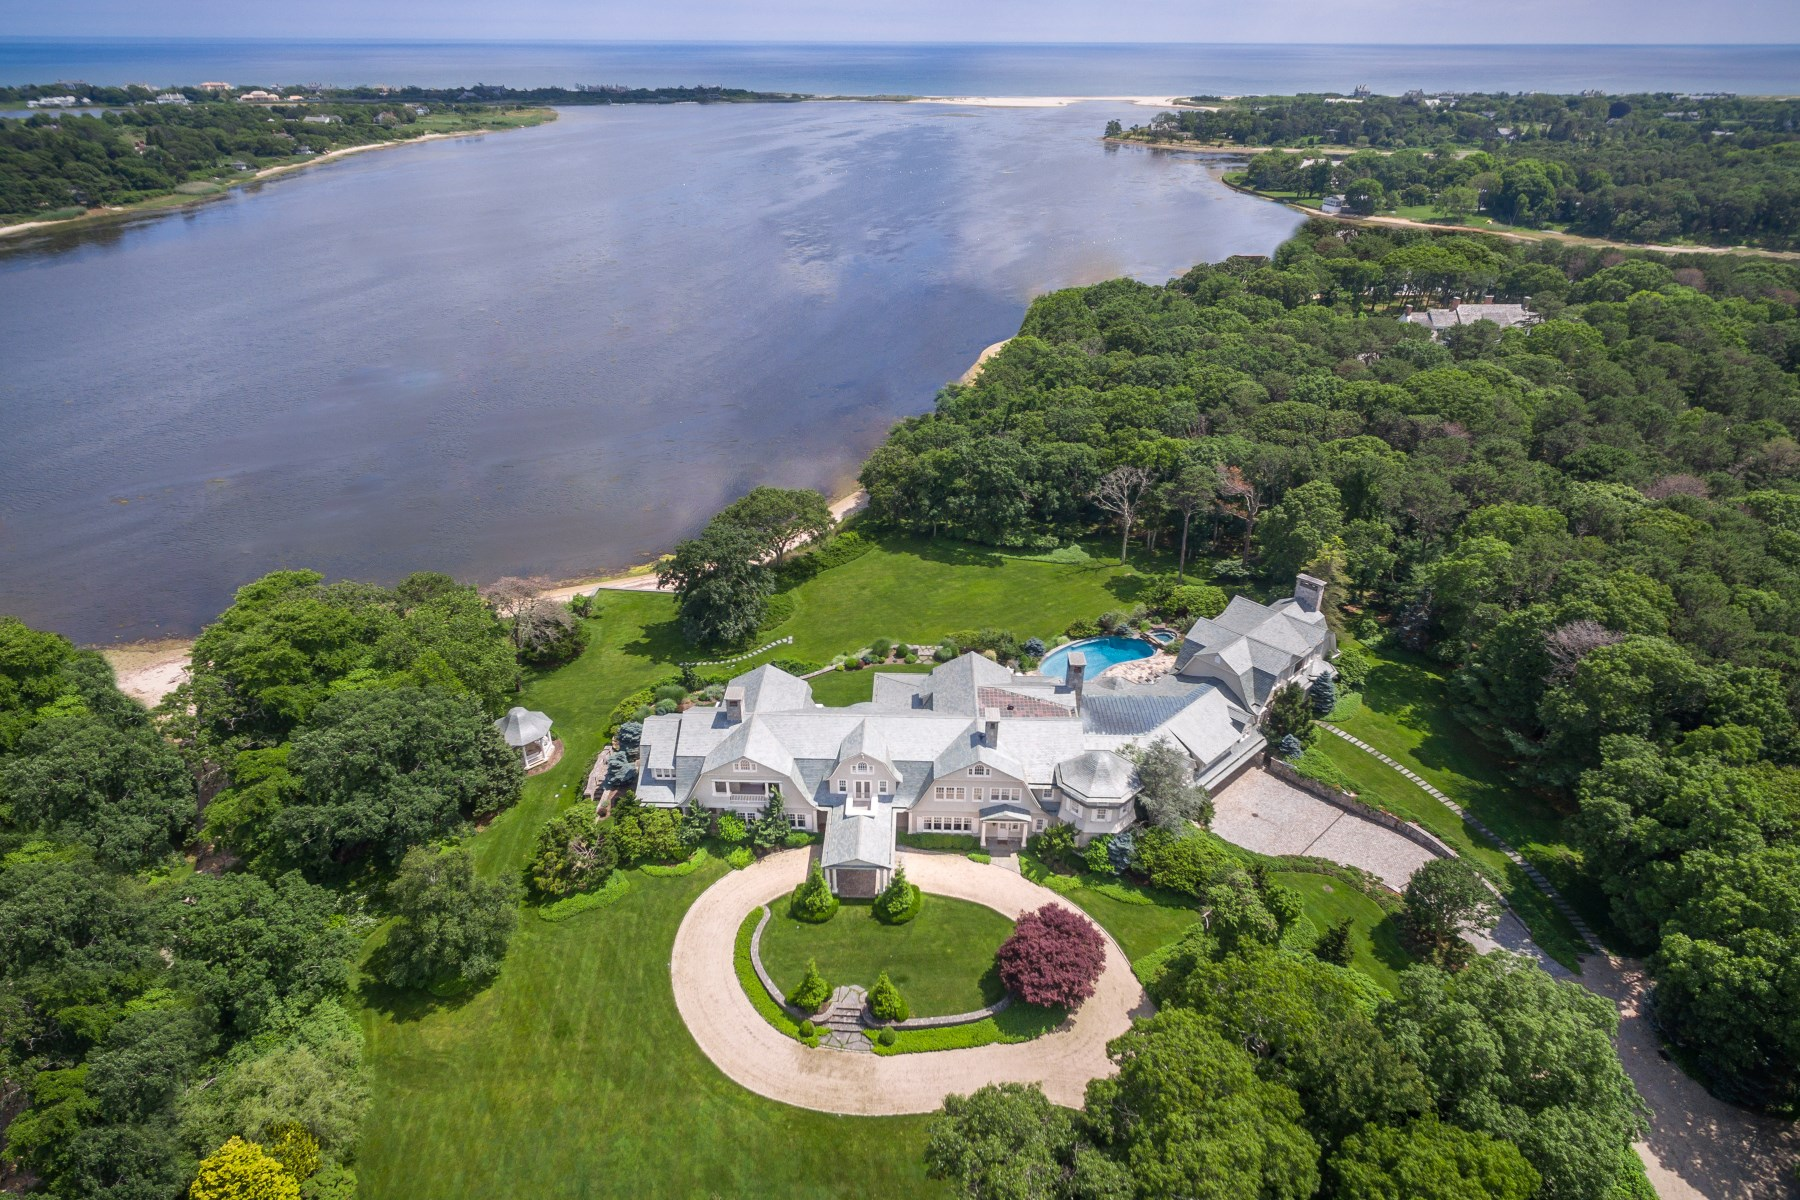 Single Family Home for Sale at Burnt Point 38 Mathews Road Wainscott, New York, 11975 United States